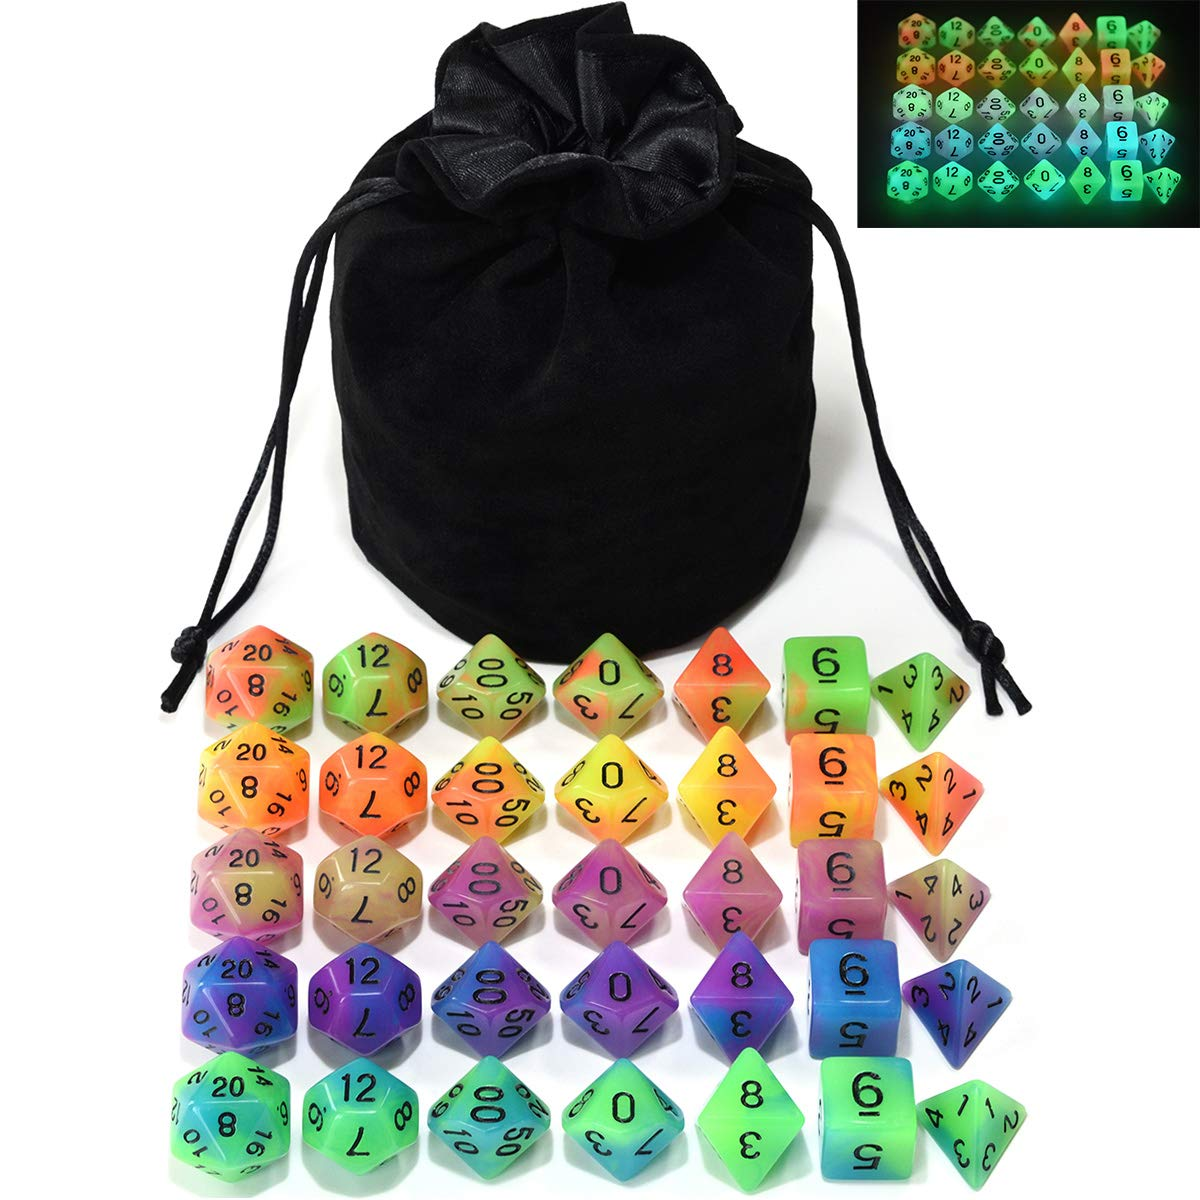 Double Color Glow in The Dark Dice Set 35 Pieces Polyhedral Dice for RPG DND MTG Games Include Black Velvet Pouch by IvyFieldDice